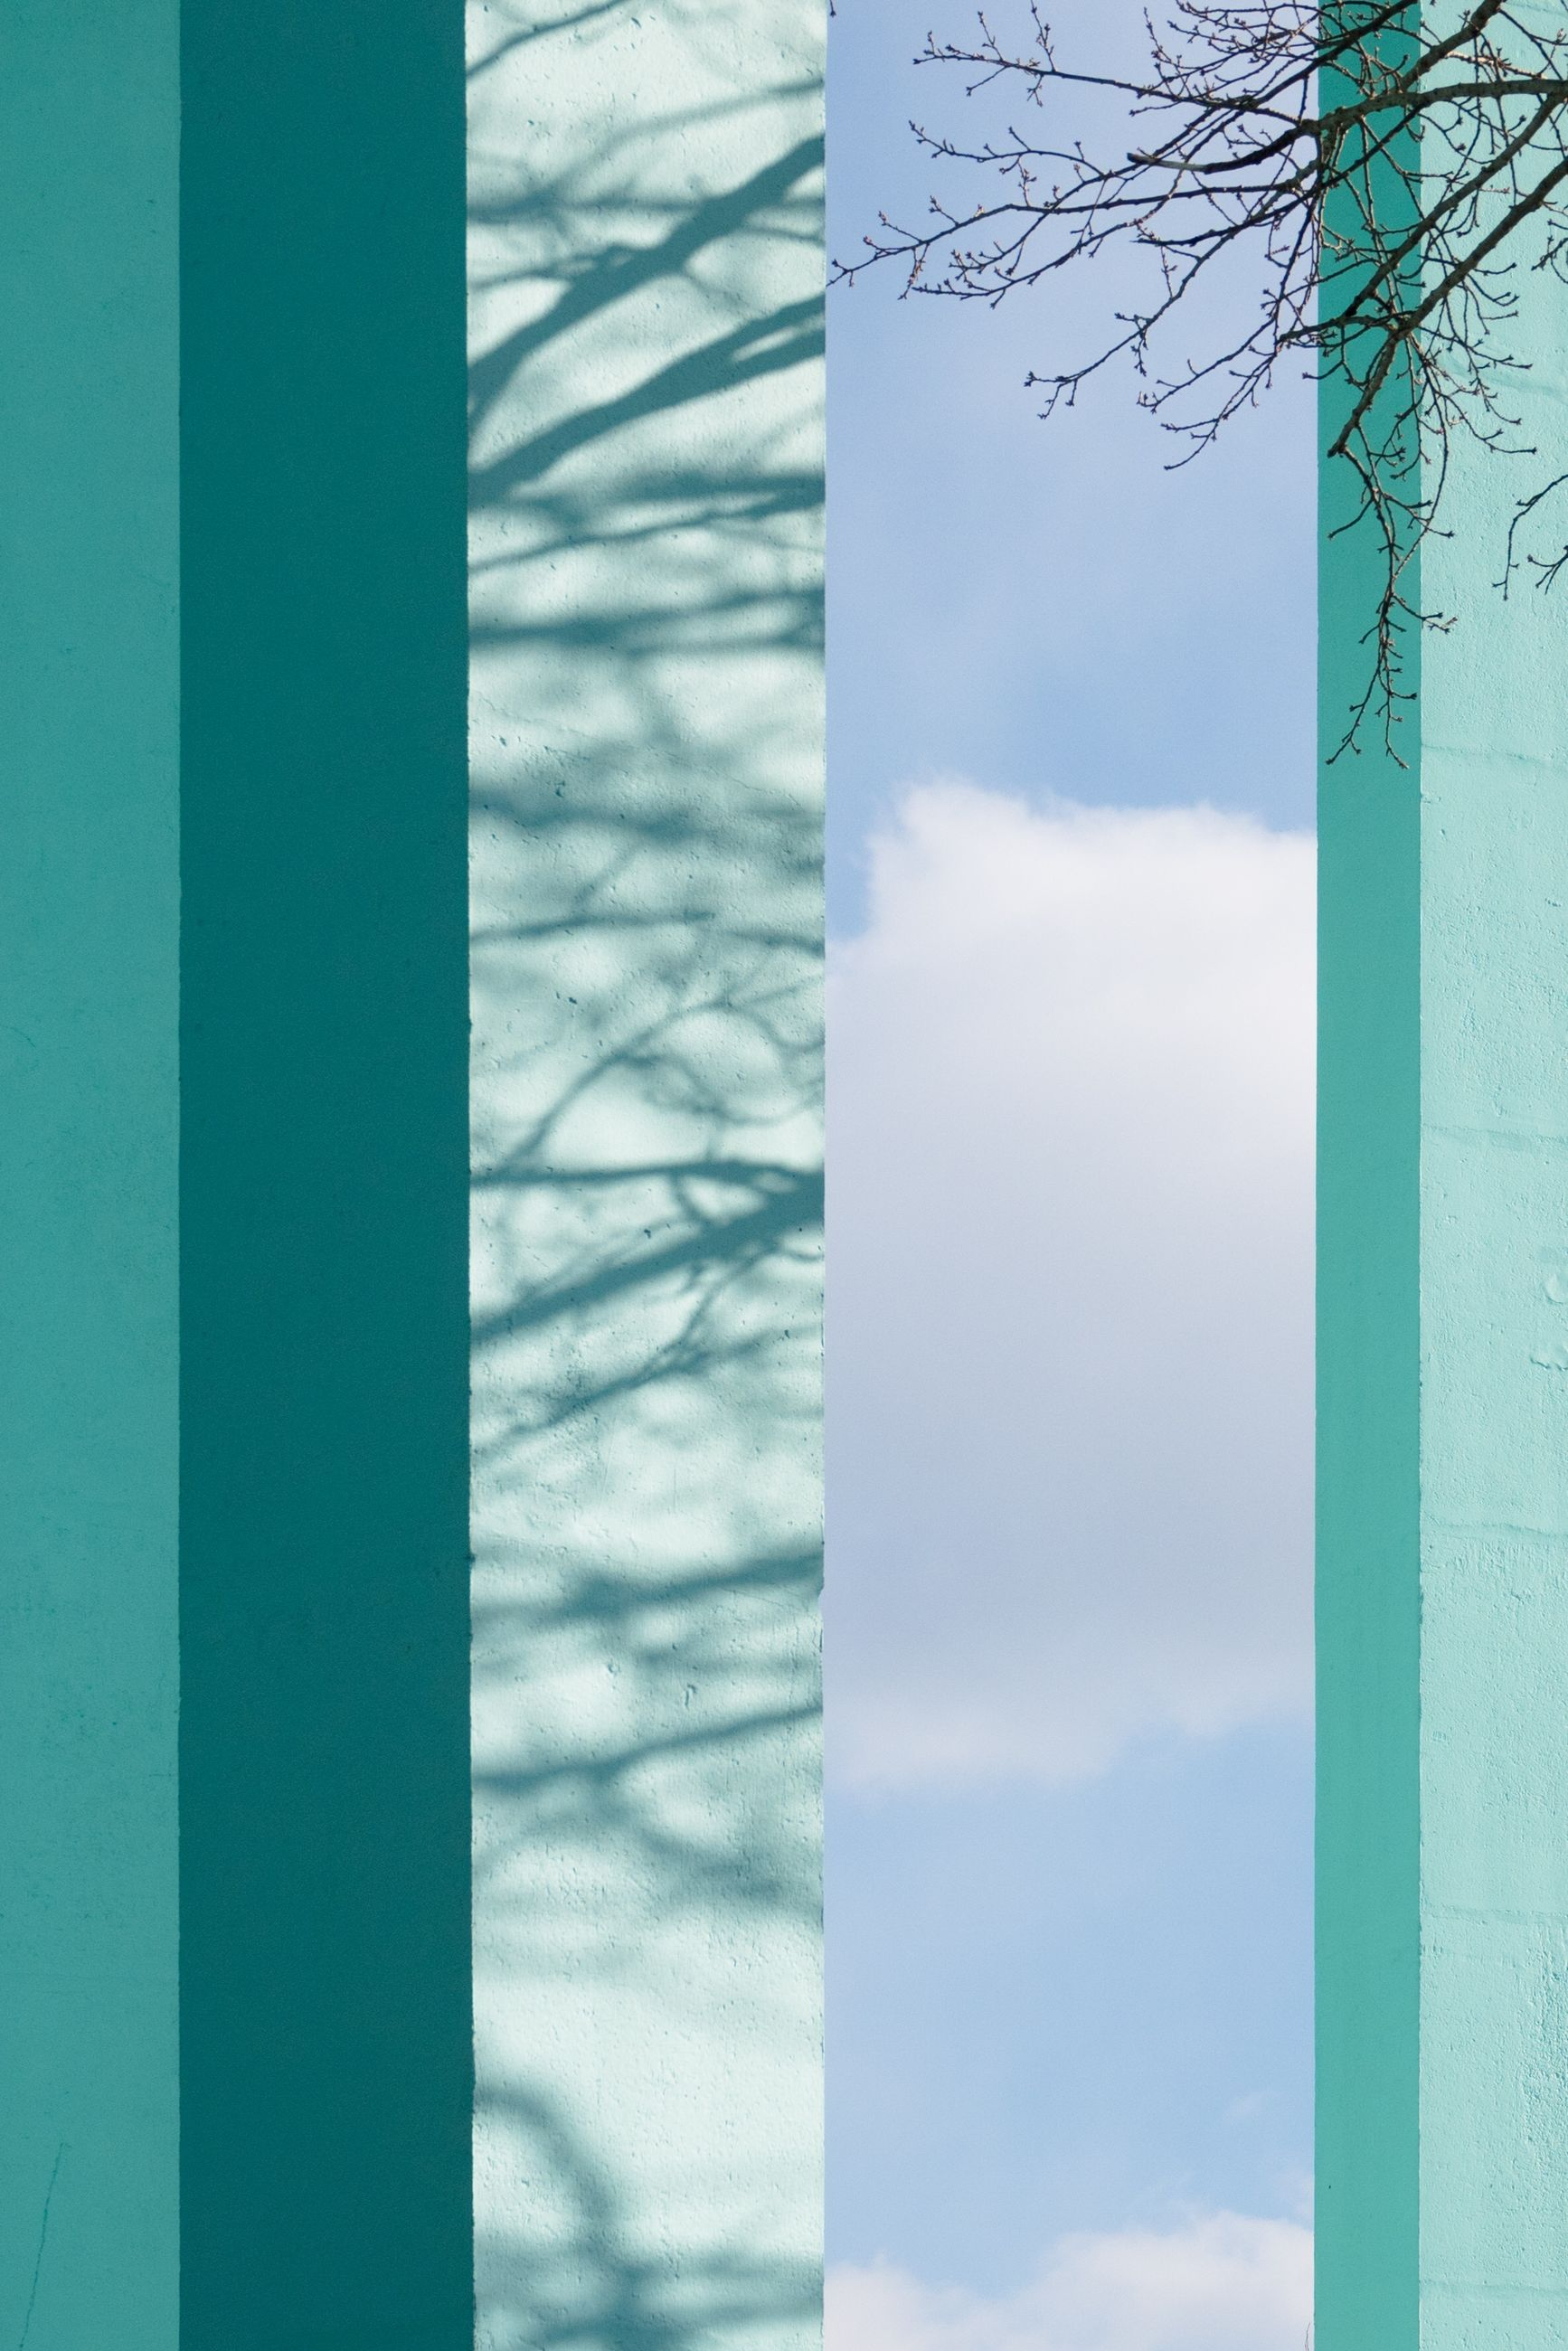 no people, day, architecture, close-up, nature, window, built structure, green color, outdoors, sky, glass - material, pattern, focus on foreground, wall - building feature, tree, full frame, building exterior, transparent, cloud - sky, backgrounds, architectural column, digital composite, turquoise colored